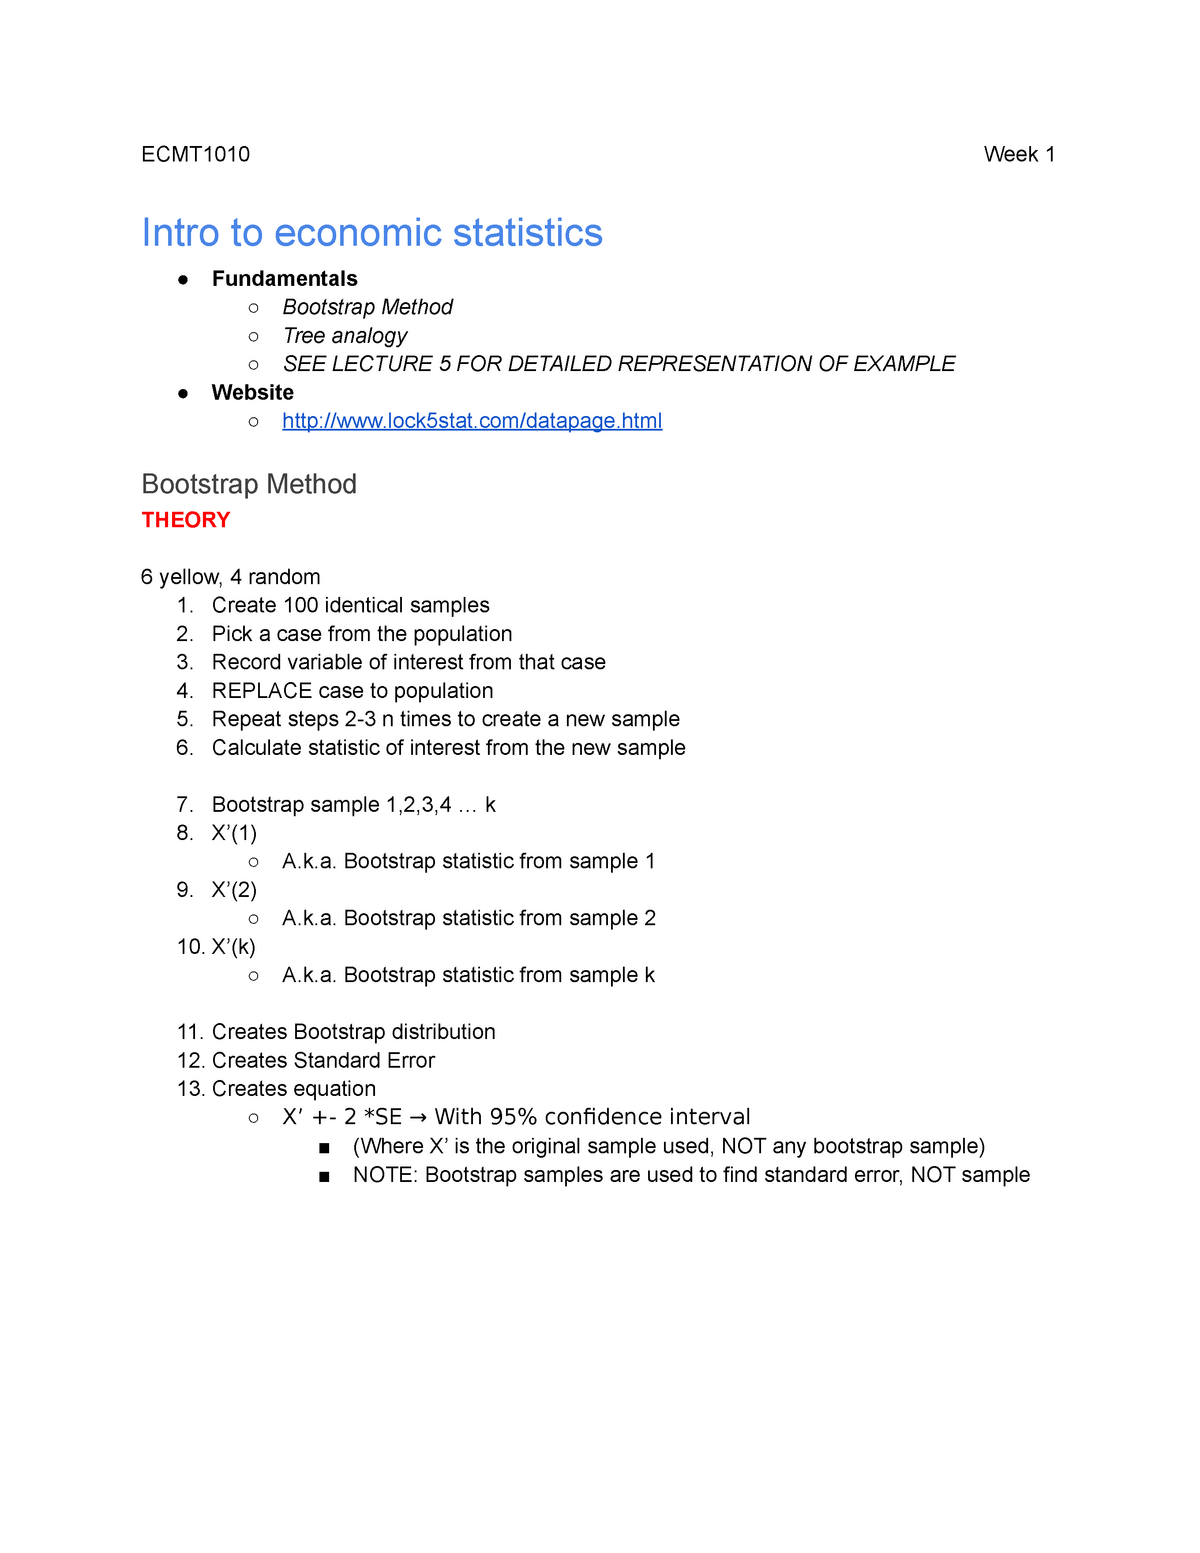 Bootstrap Analysis - Lecture notes Week 1-4 - ECMT1020: Introduction